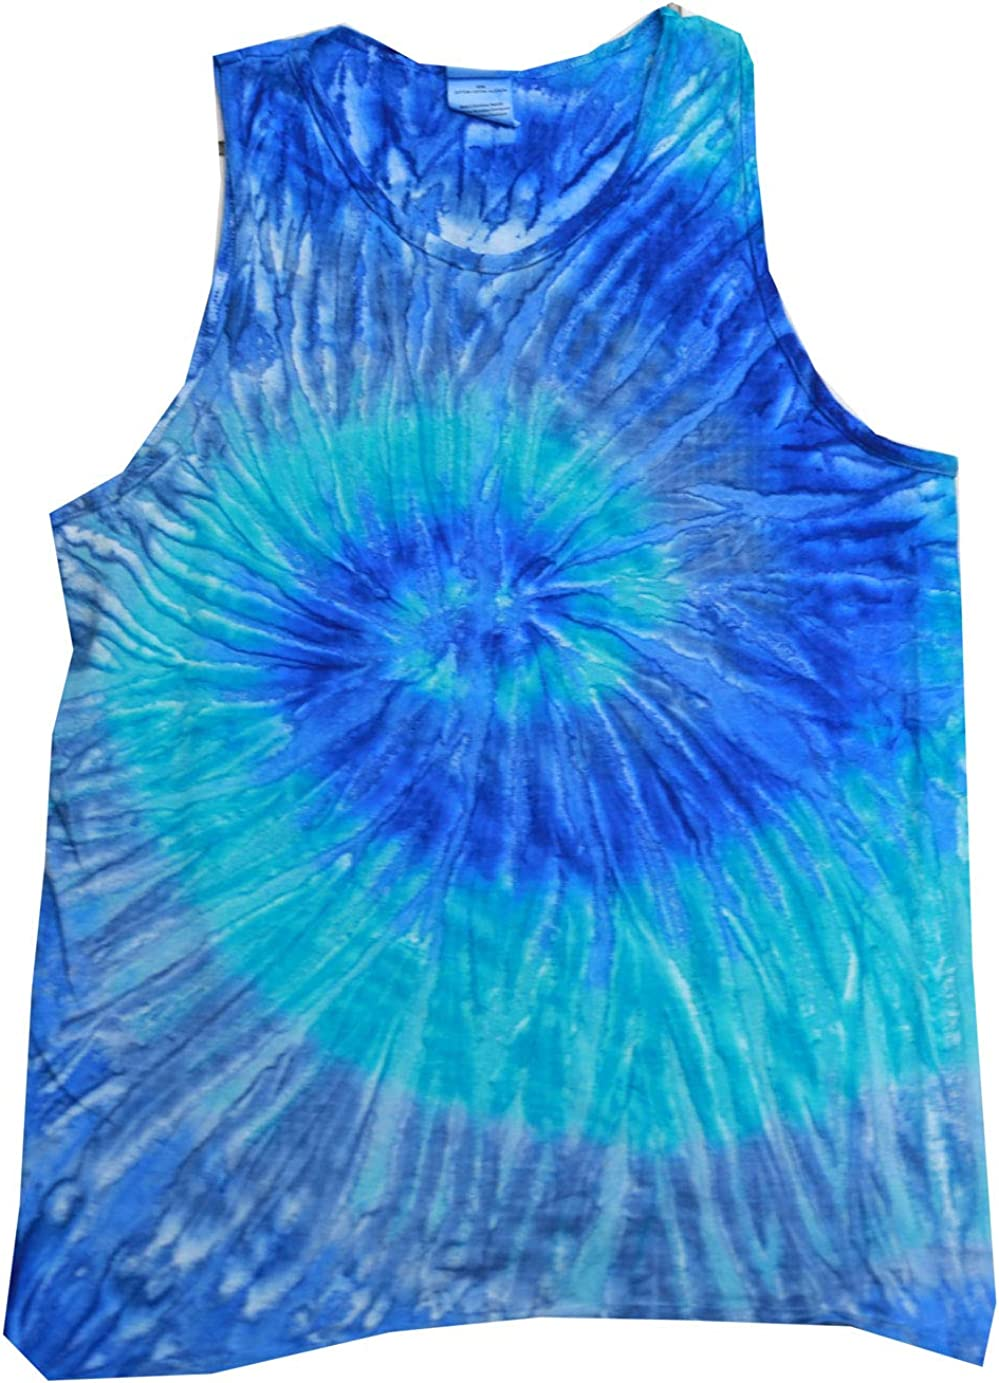 Tie Dye Tank Tops Sleeveless Athletic Muscle Shirts 100/% Cotton Multicolor